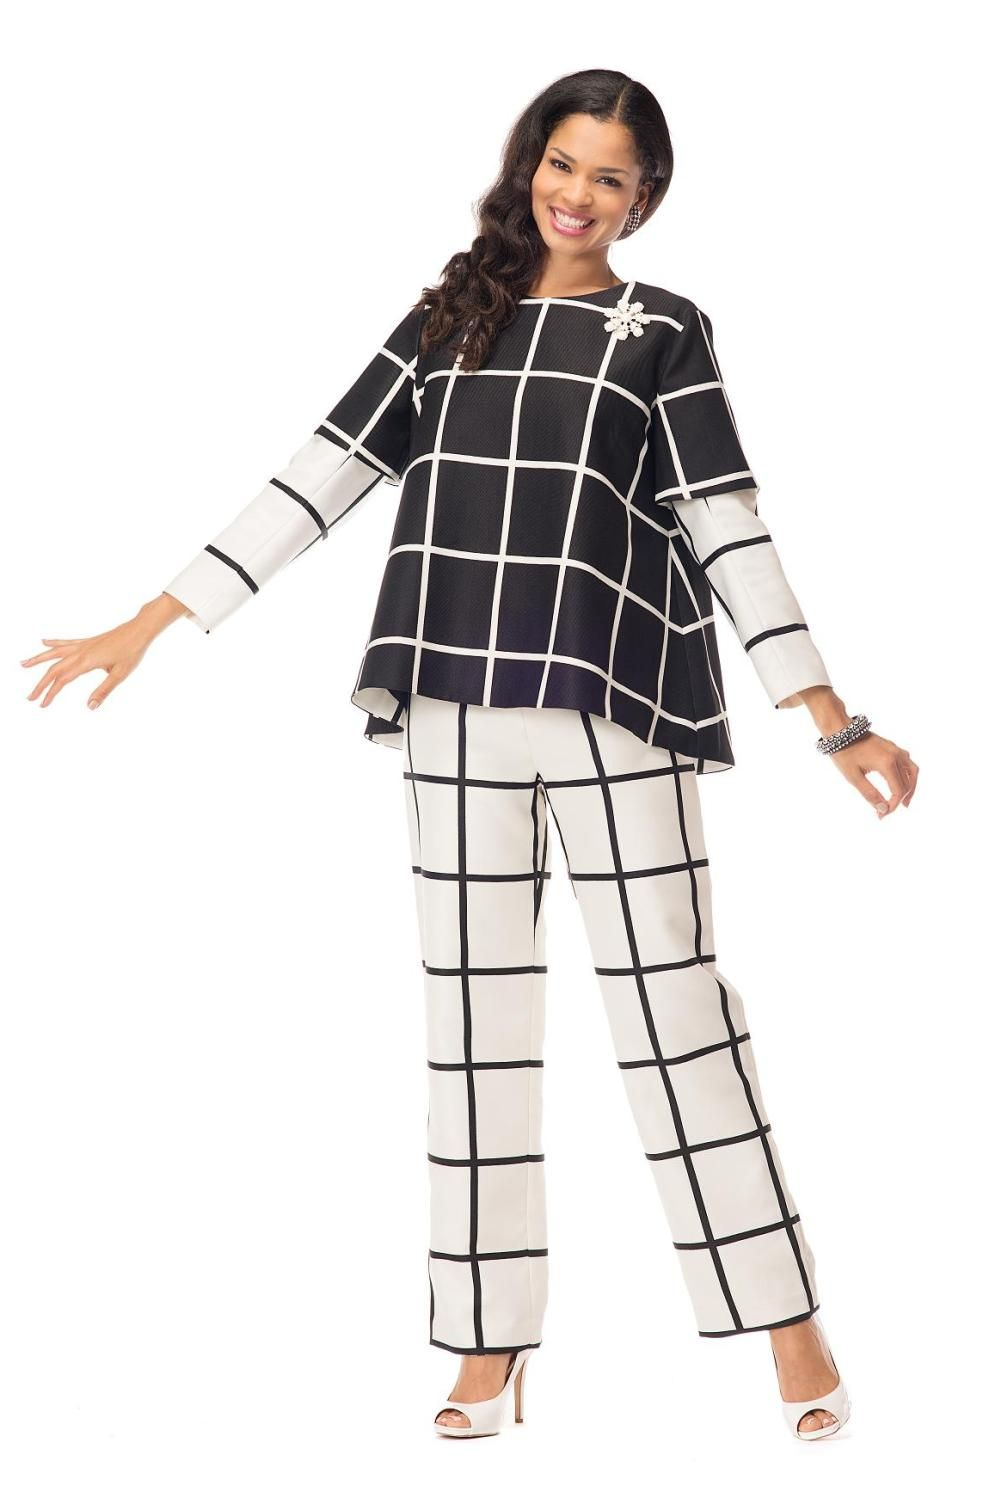 stunning piece pant suit by in novelty fabric great church suit stunning 2 piece pant suit by in novelty fabric great church suit work suit day into evening suit or special occasion suit top is 24 inches